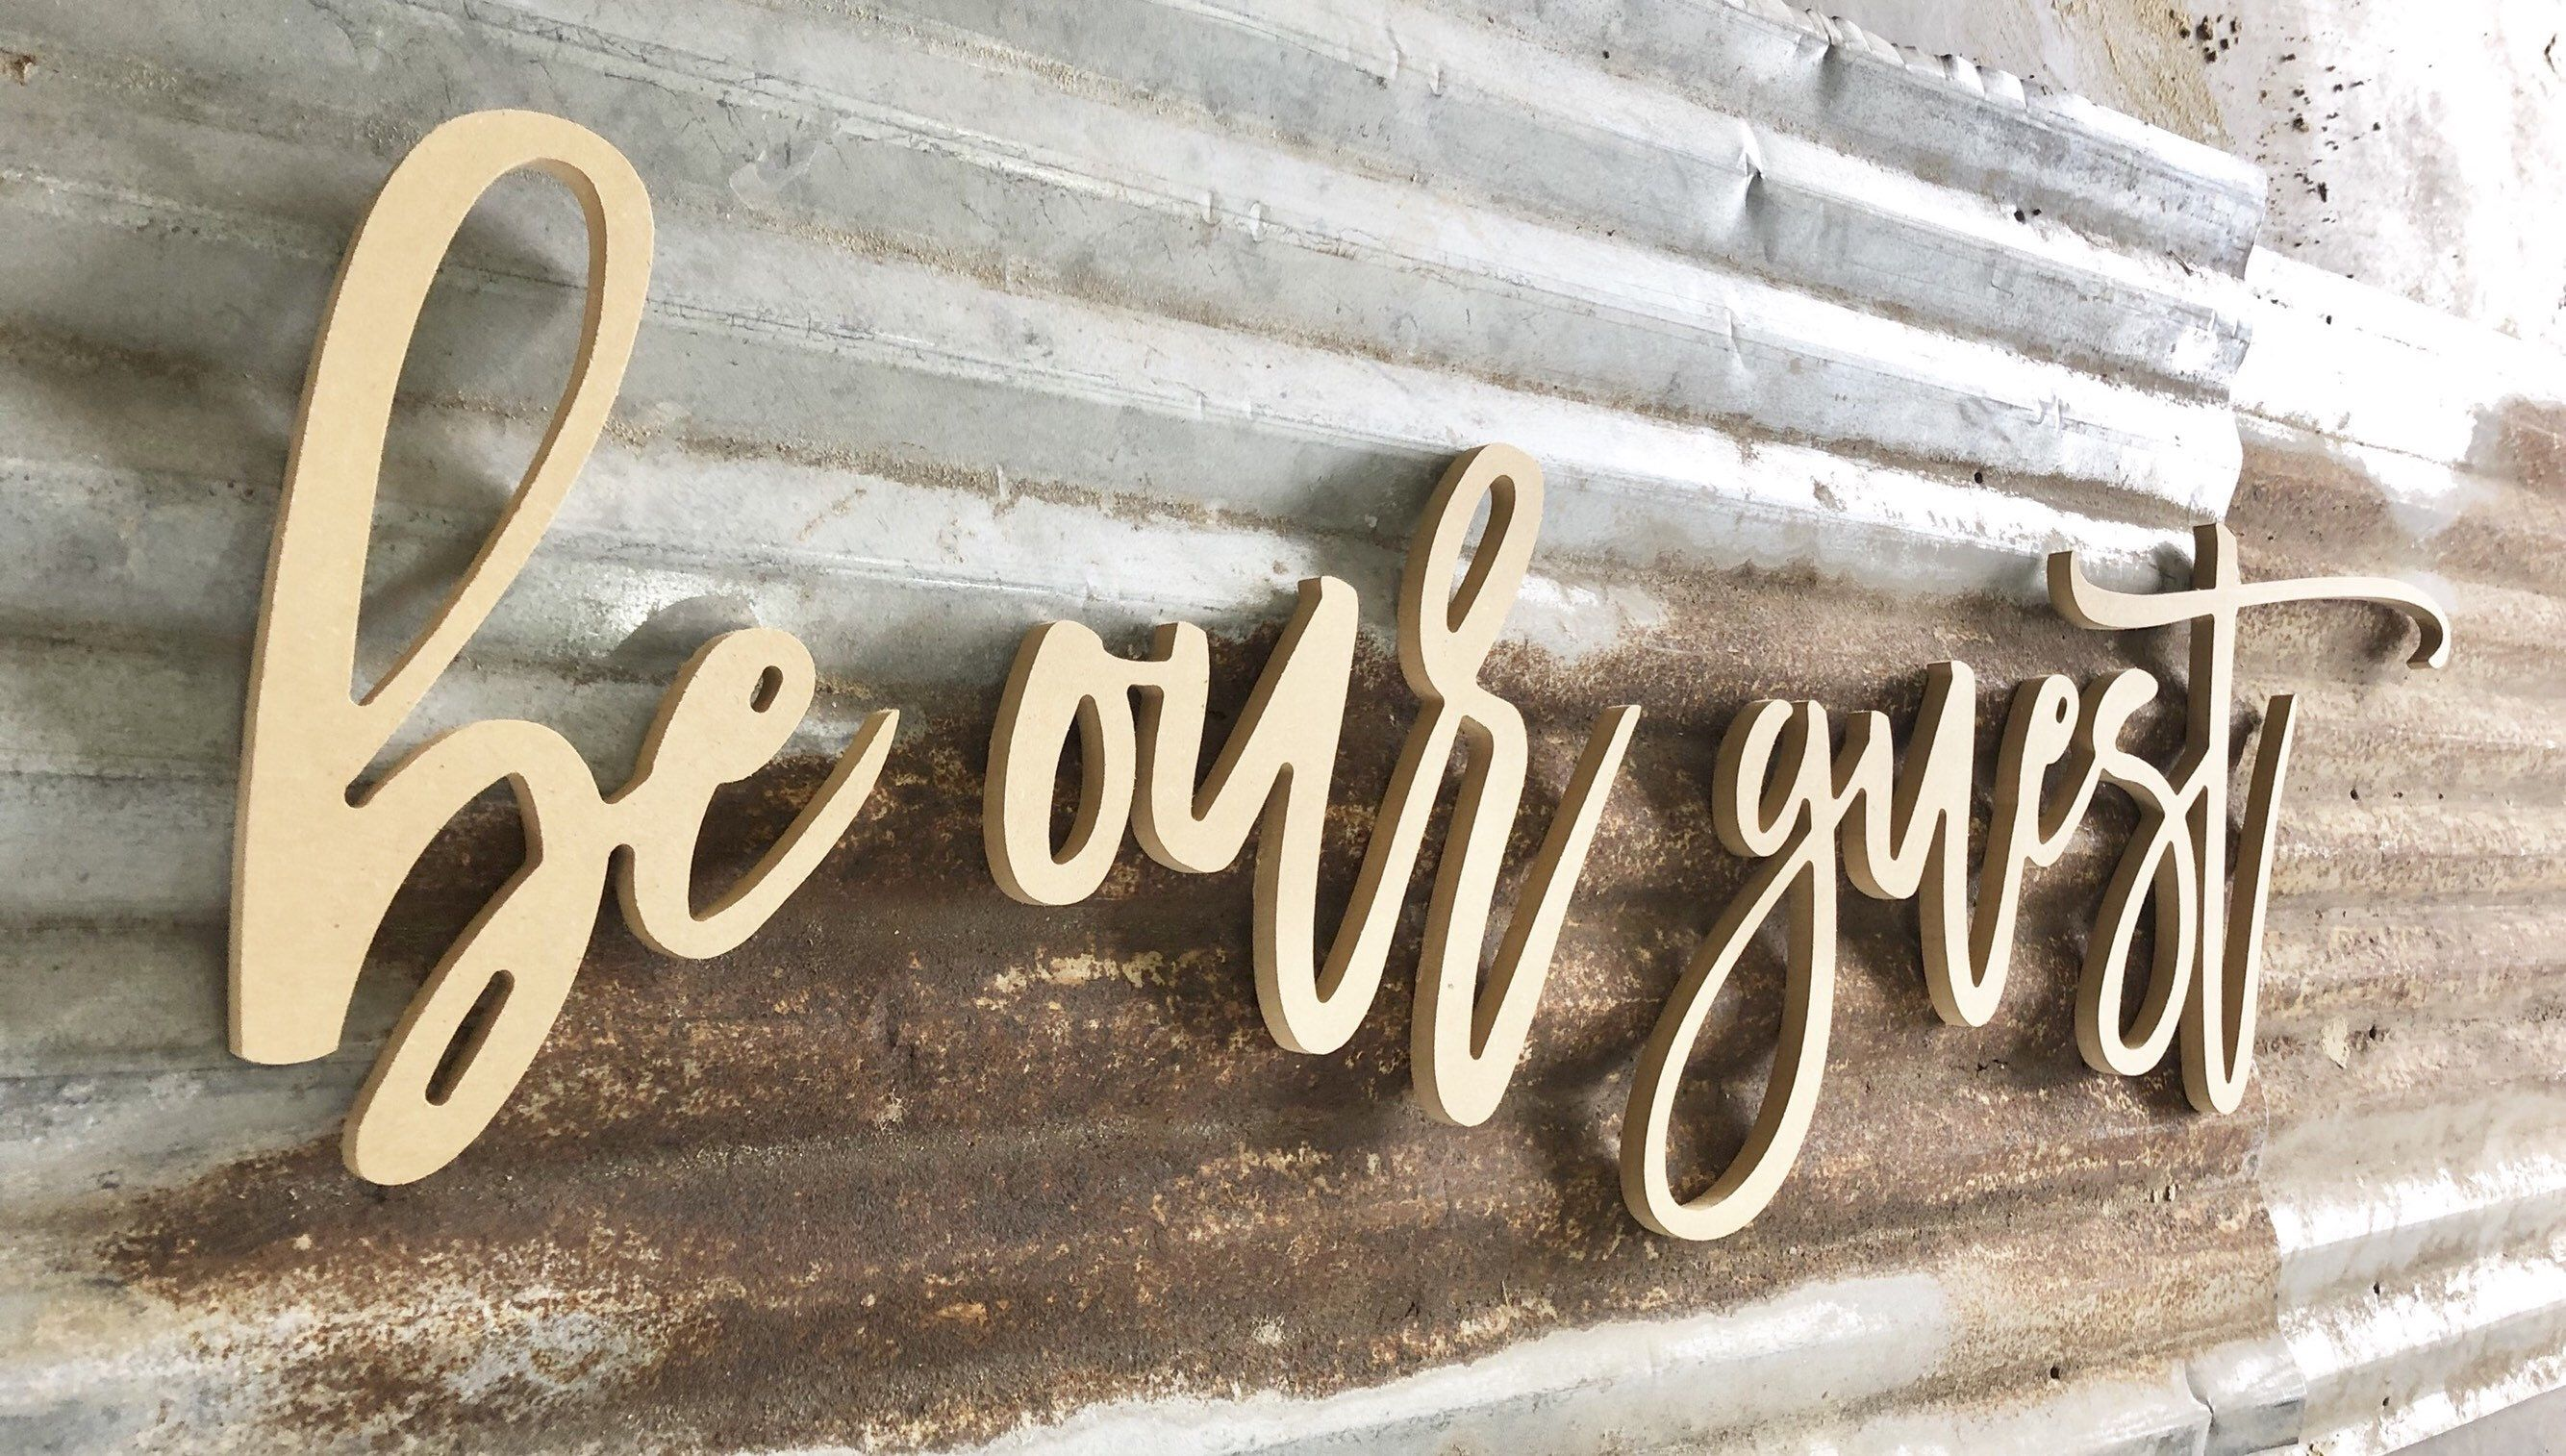 Be Our Guest Cursive Letters Wood Wall Art Housewarming Wood Supplies Wood Diy Always Come Ho Wood Letter Wall Decor Initial Wall Decor Letter Wall Decor